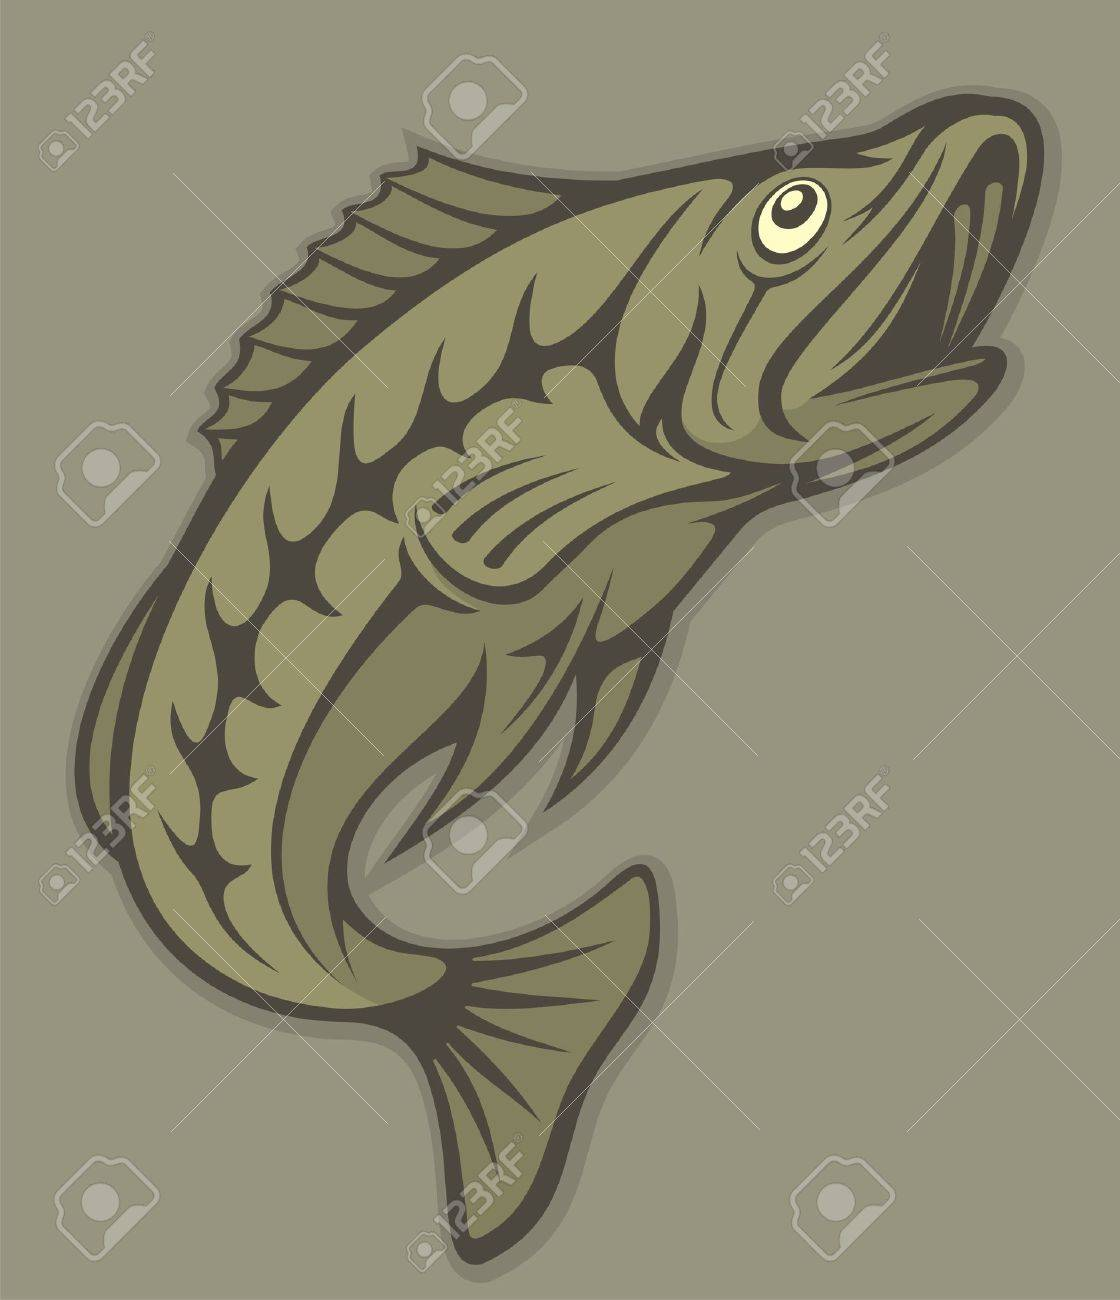 Jumping fish with open mouth illustration. - 9360649